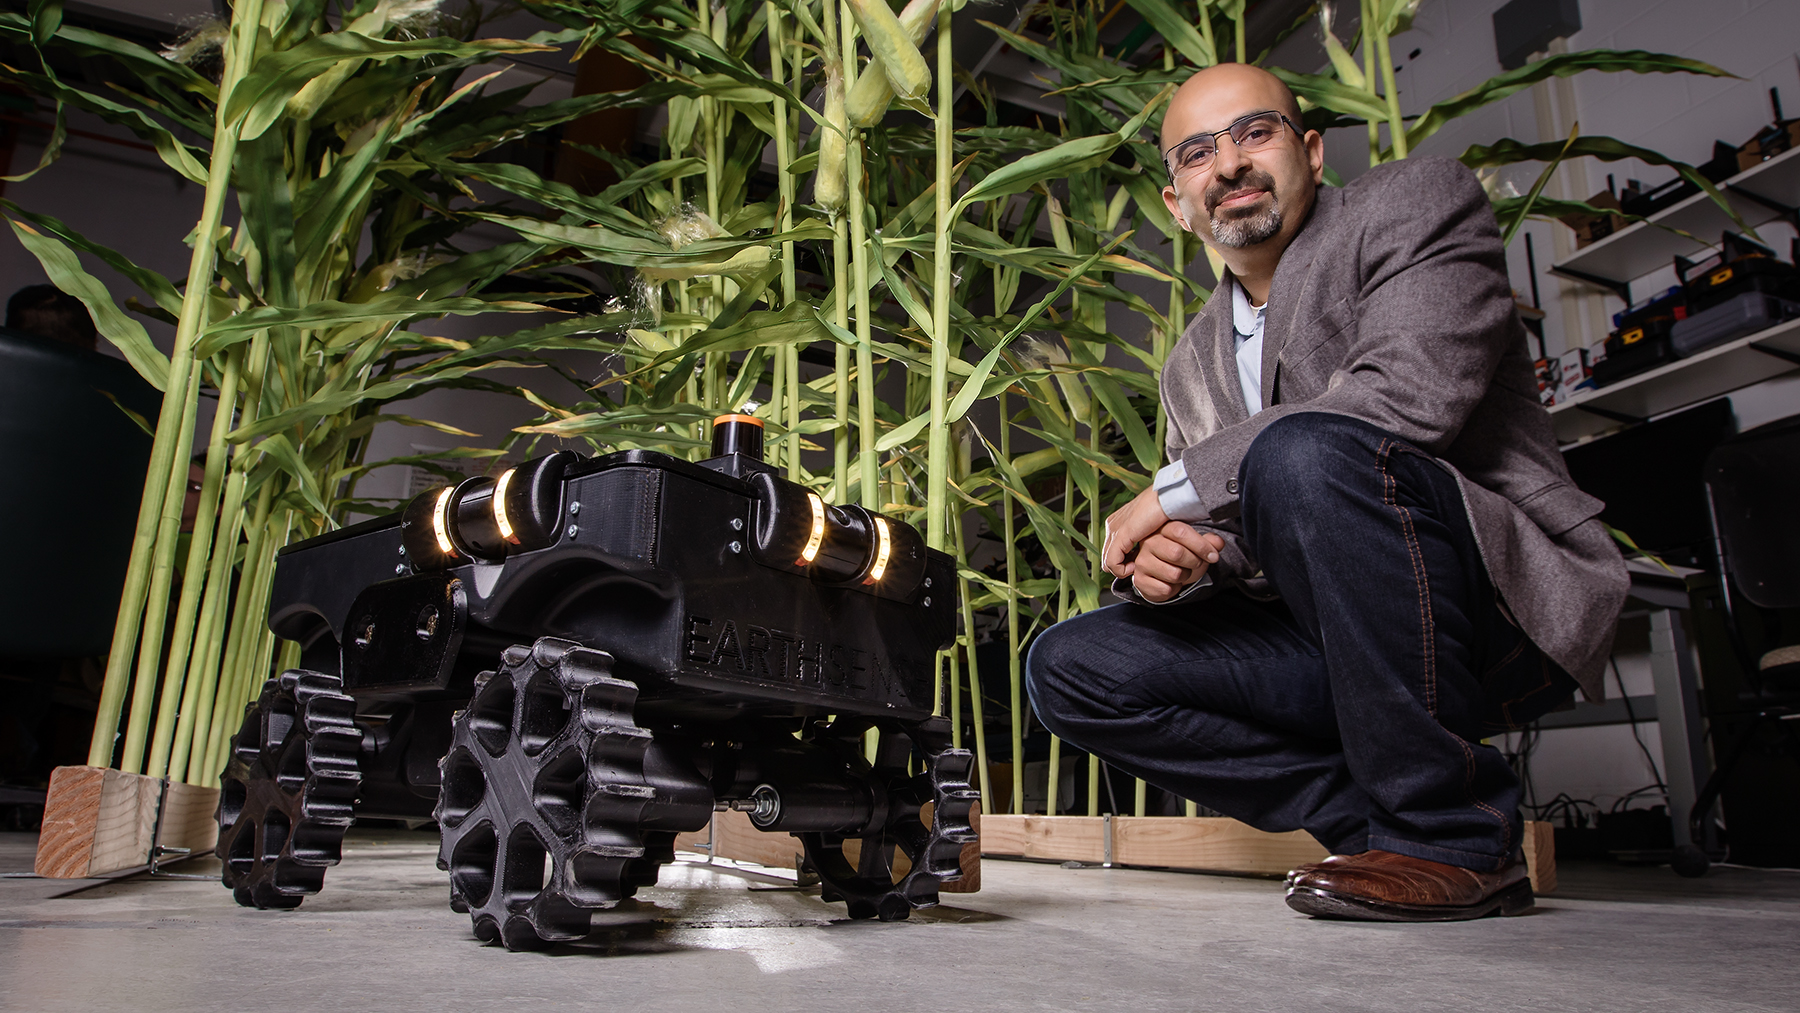 Agricultural and biological engineering professor Girish Chowdhary. Photo by L. Brian Stauffer